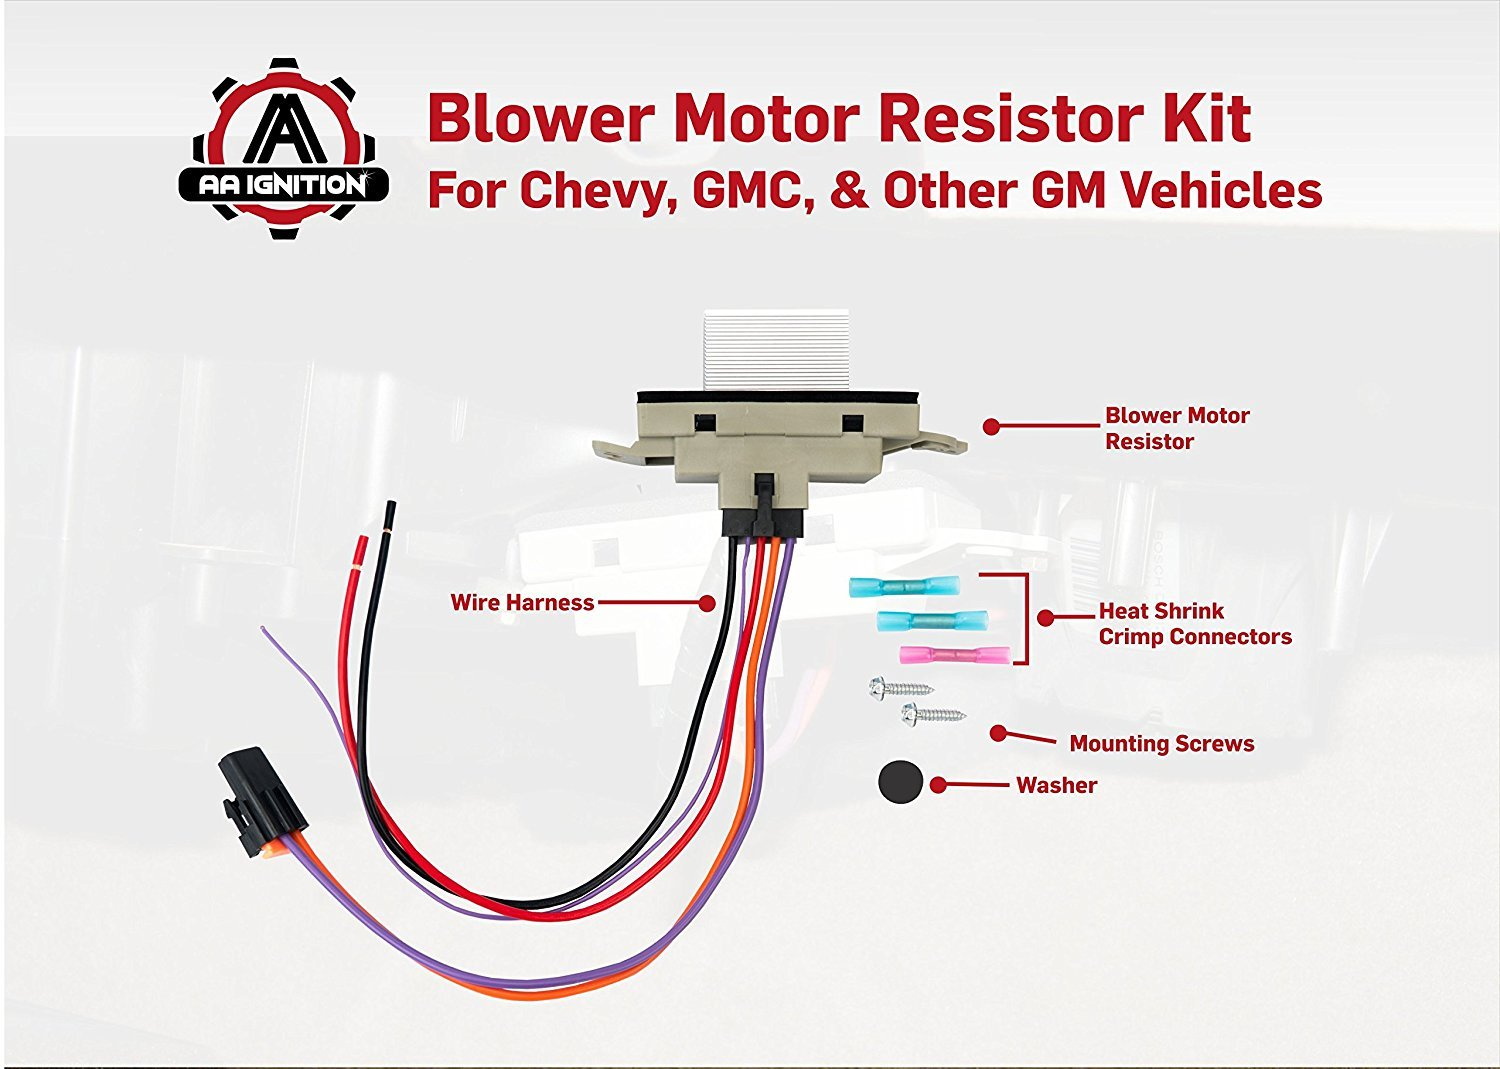 2008 Avalanche Ac Blower Wiring Diagram Libraries Harness To Resistor Libraryamazon Com Motor Complete Kit With